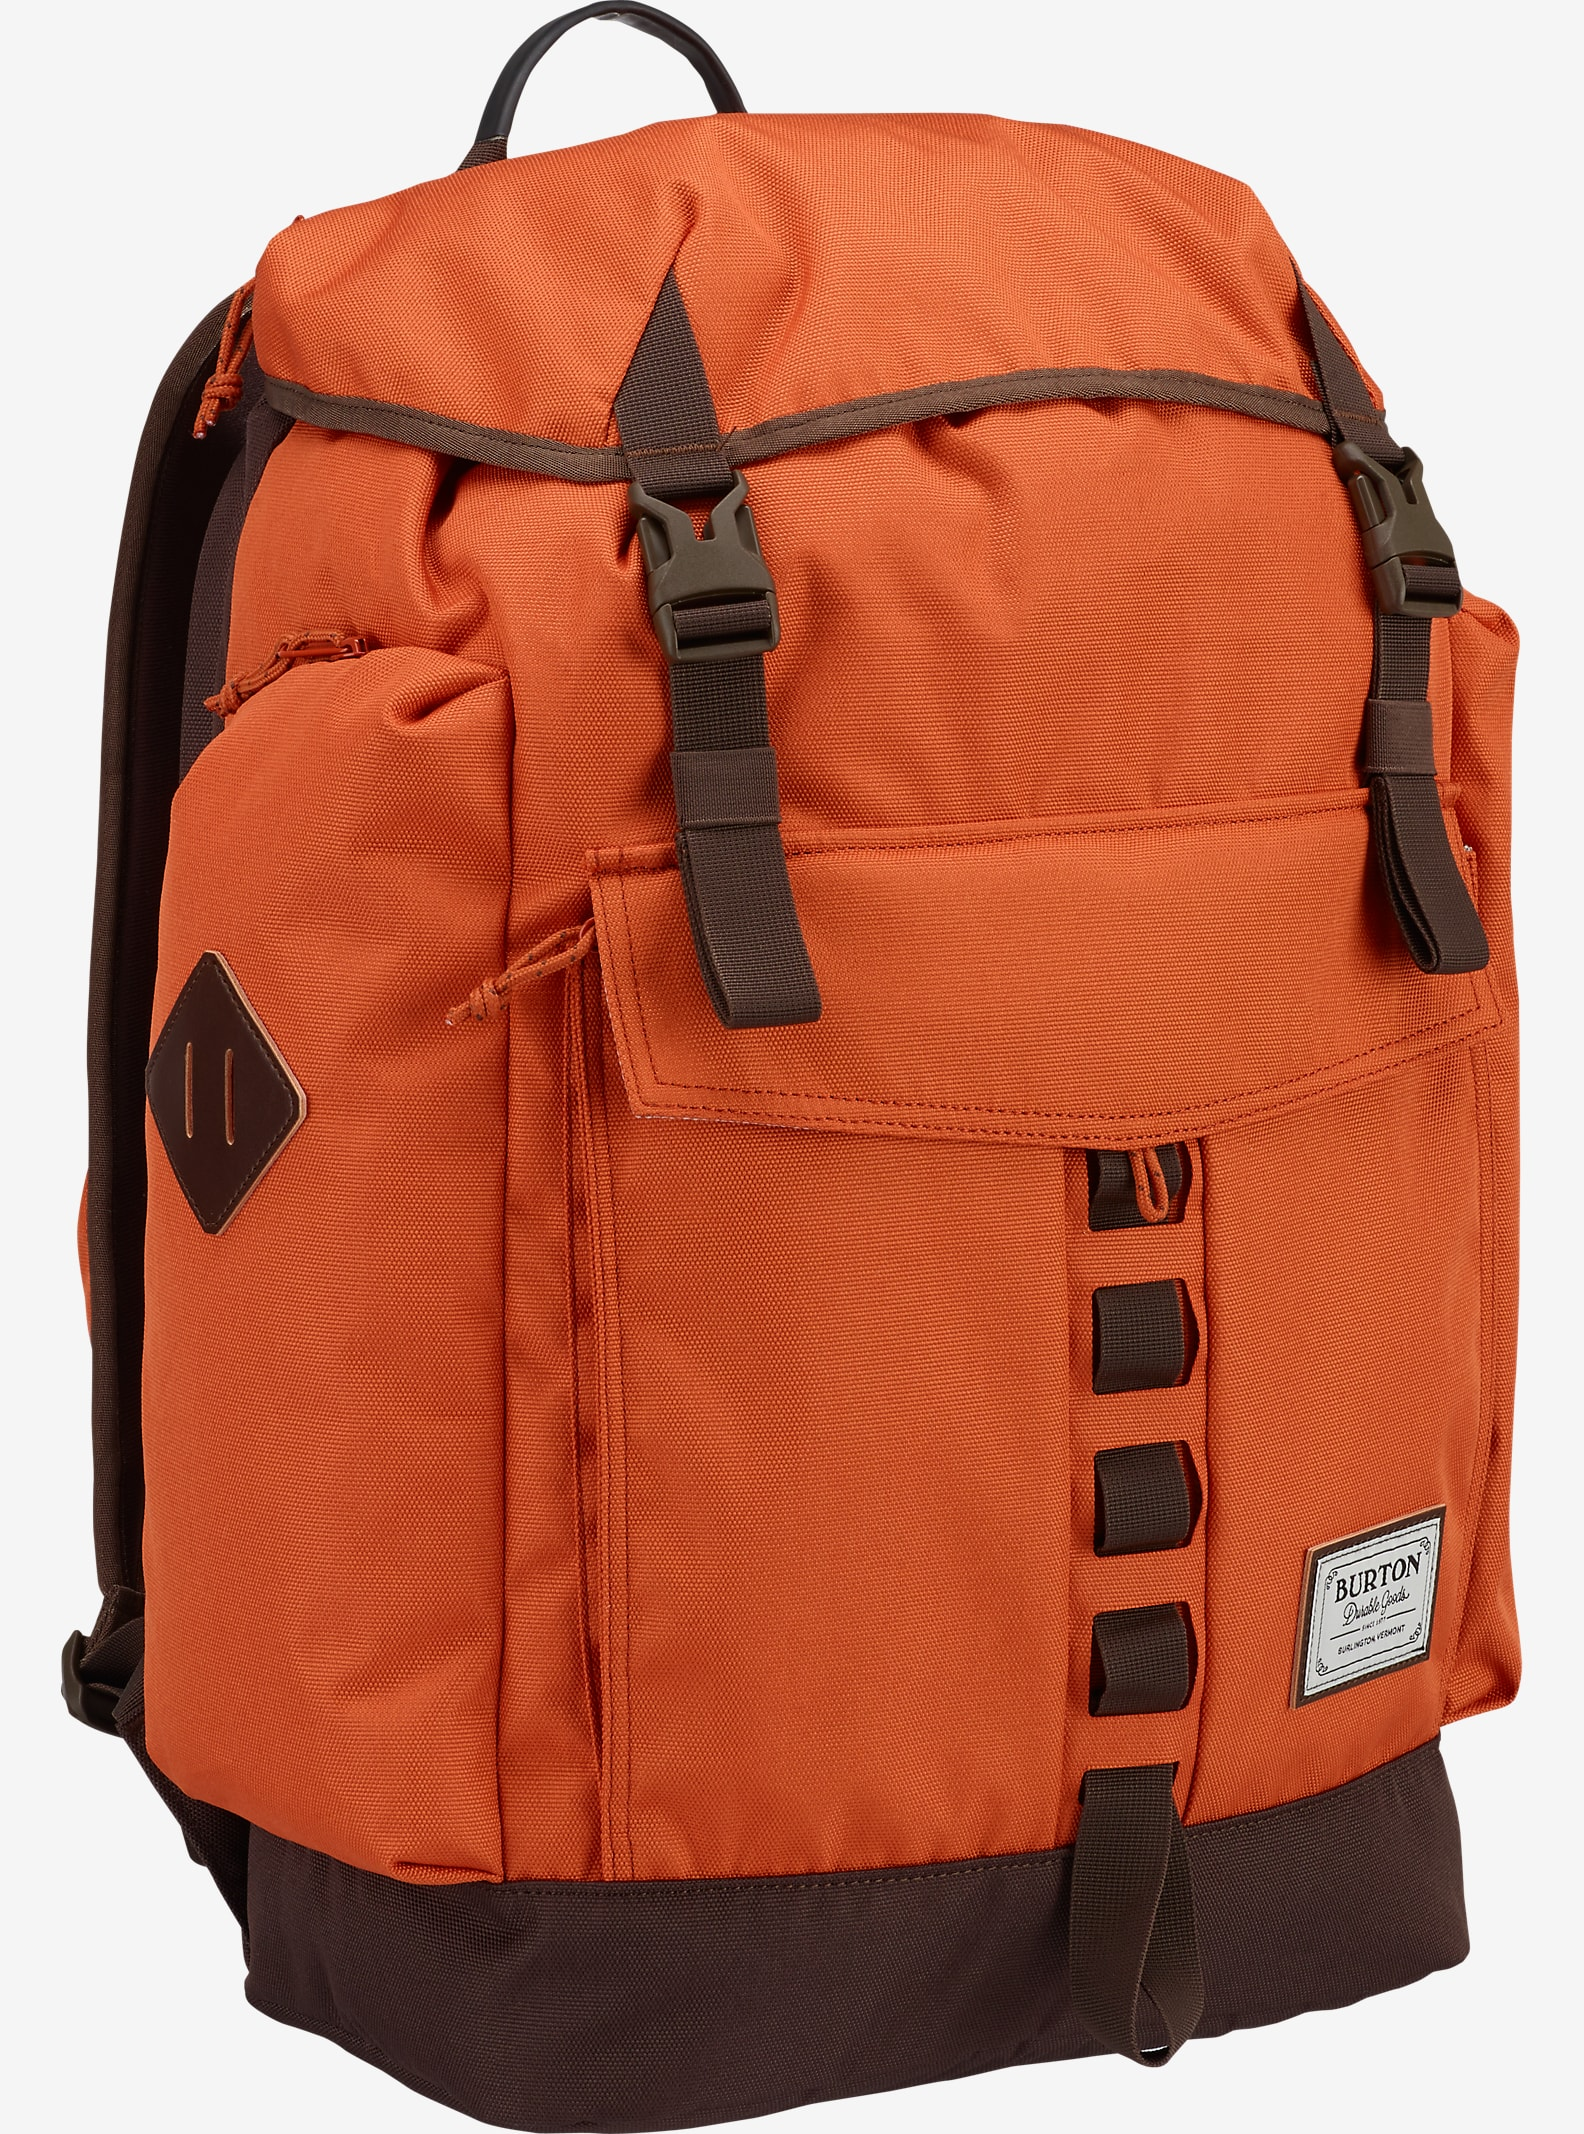 Burton Fathom Backpack shown in Burnt Ochre [bluesign® Approved]